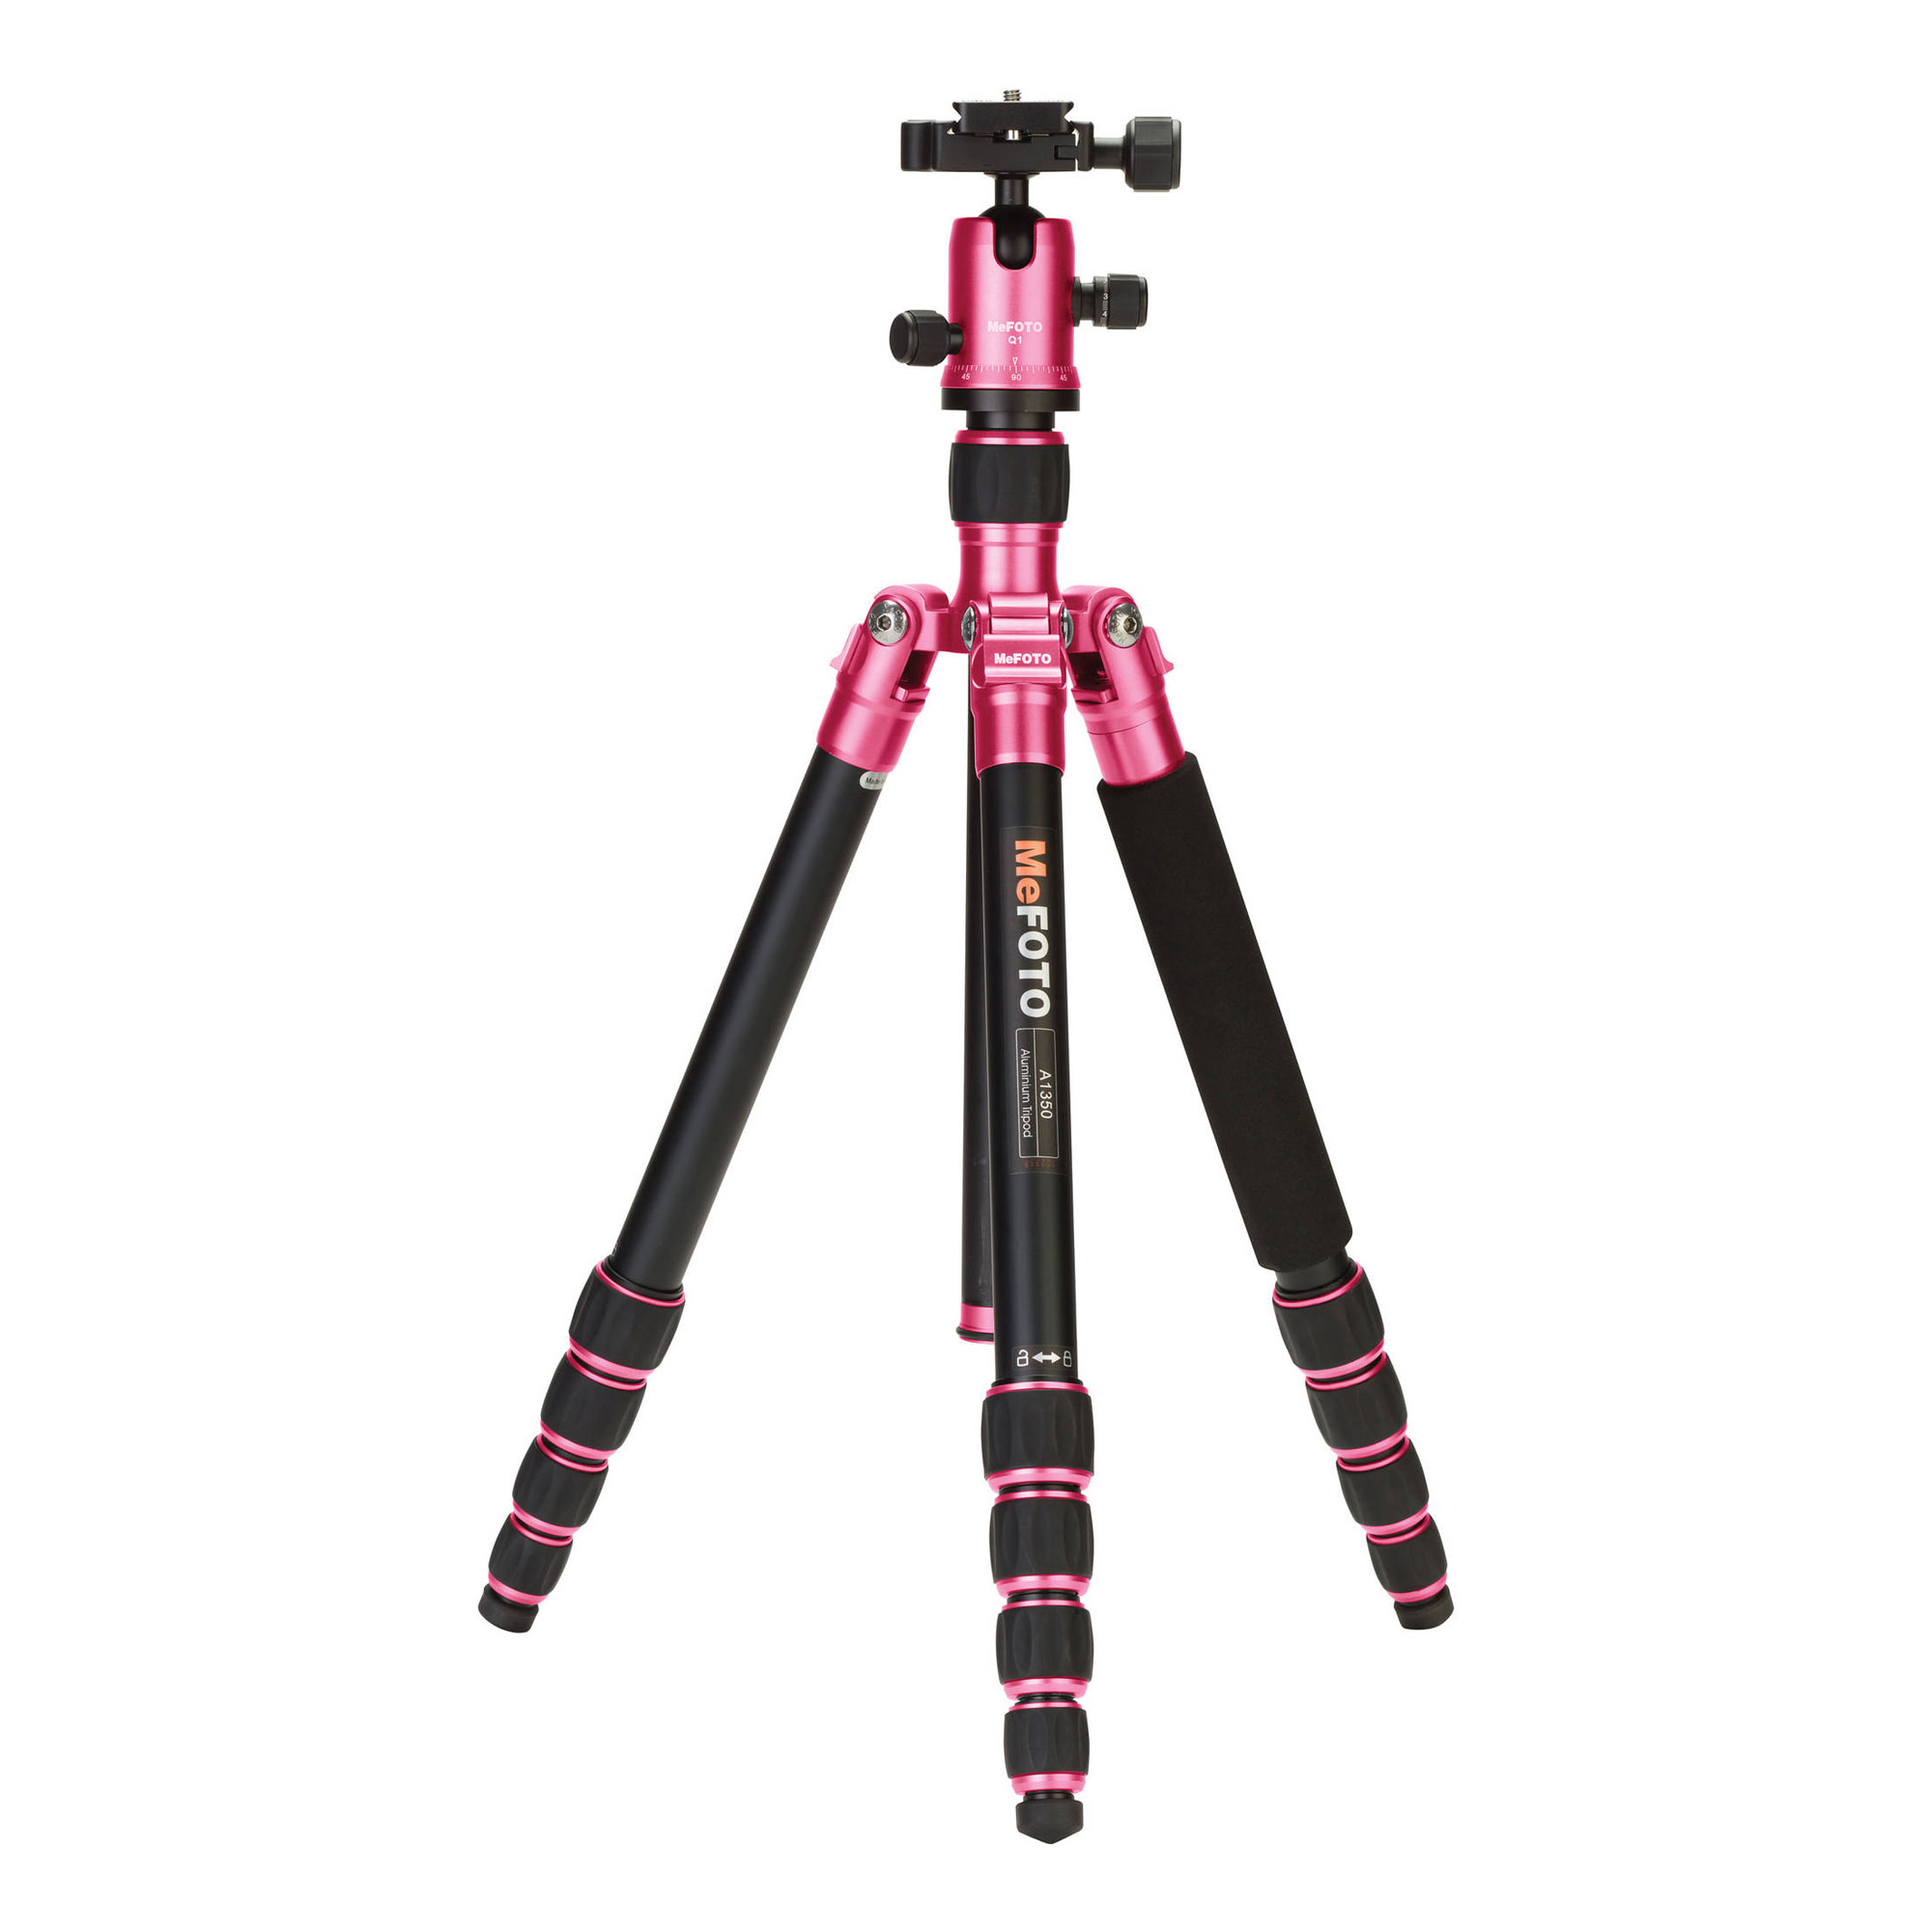 RoadTrip Travel Tripod Kit (Hot Pink)